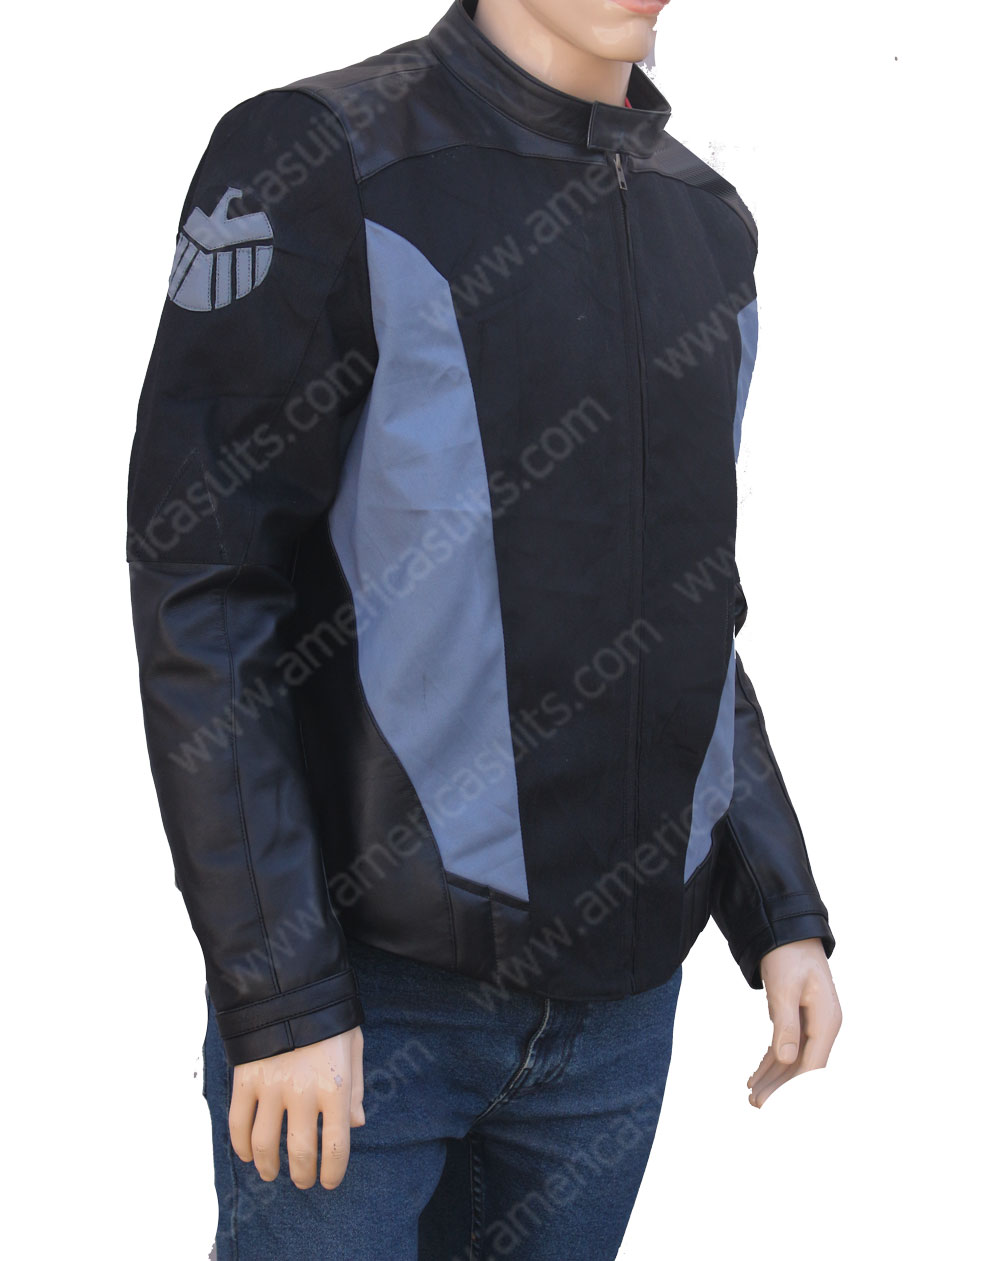 Agents of Shield Mike Peterson black jacket